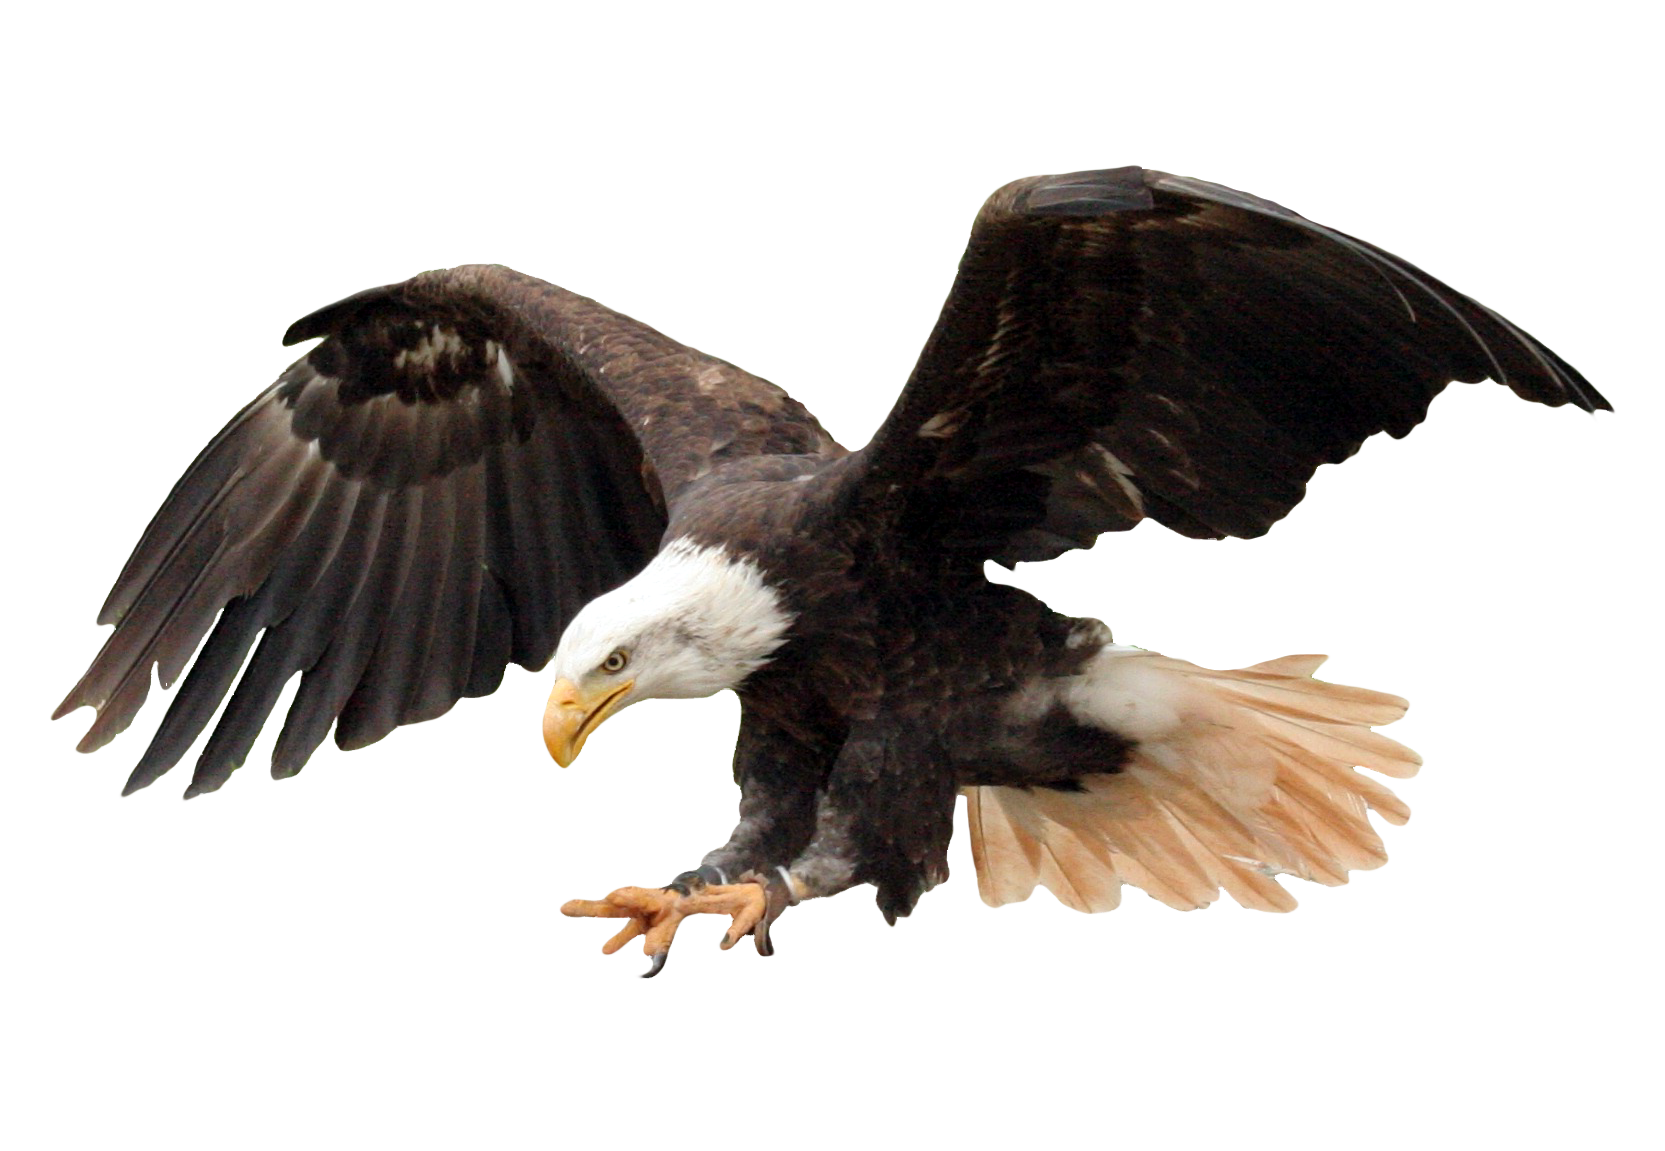 Bald Eagle PNG Transparent Image - PngPix